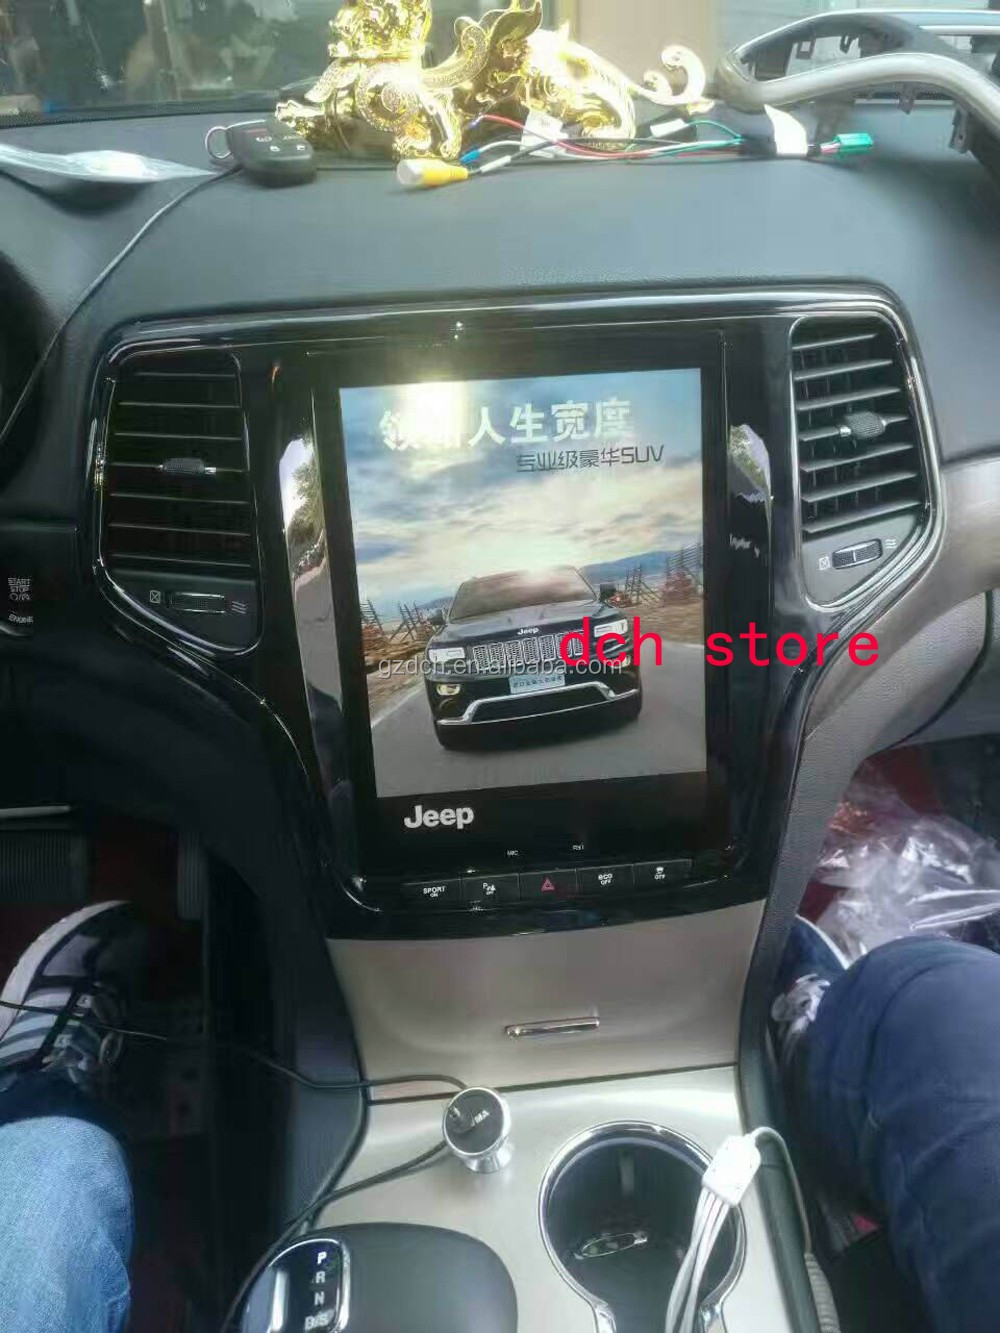 10.4 inch android car dvd player for jeep grand cherokee tesla screen style vertical screen quad core 32G black color WS-1003S